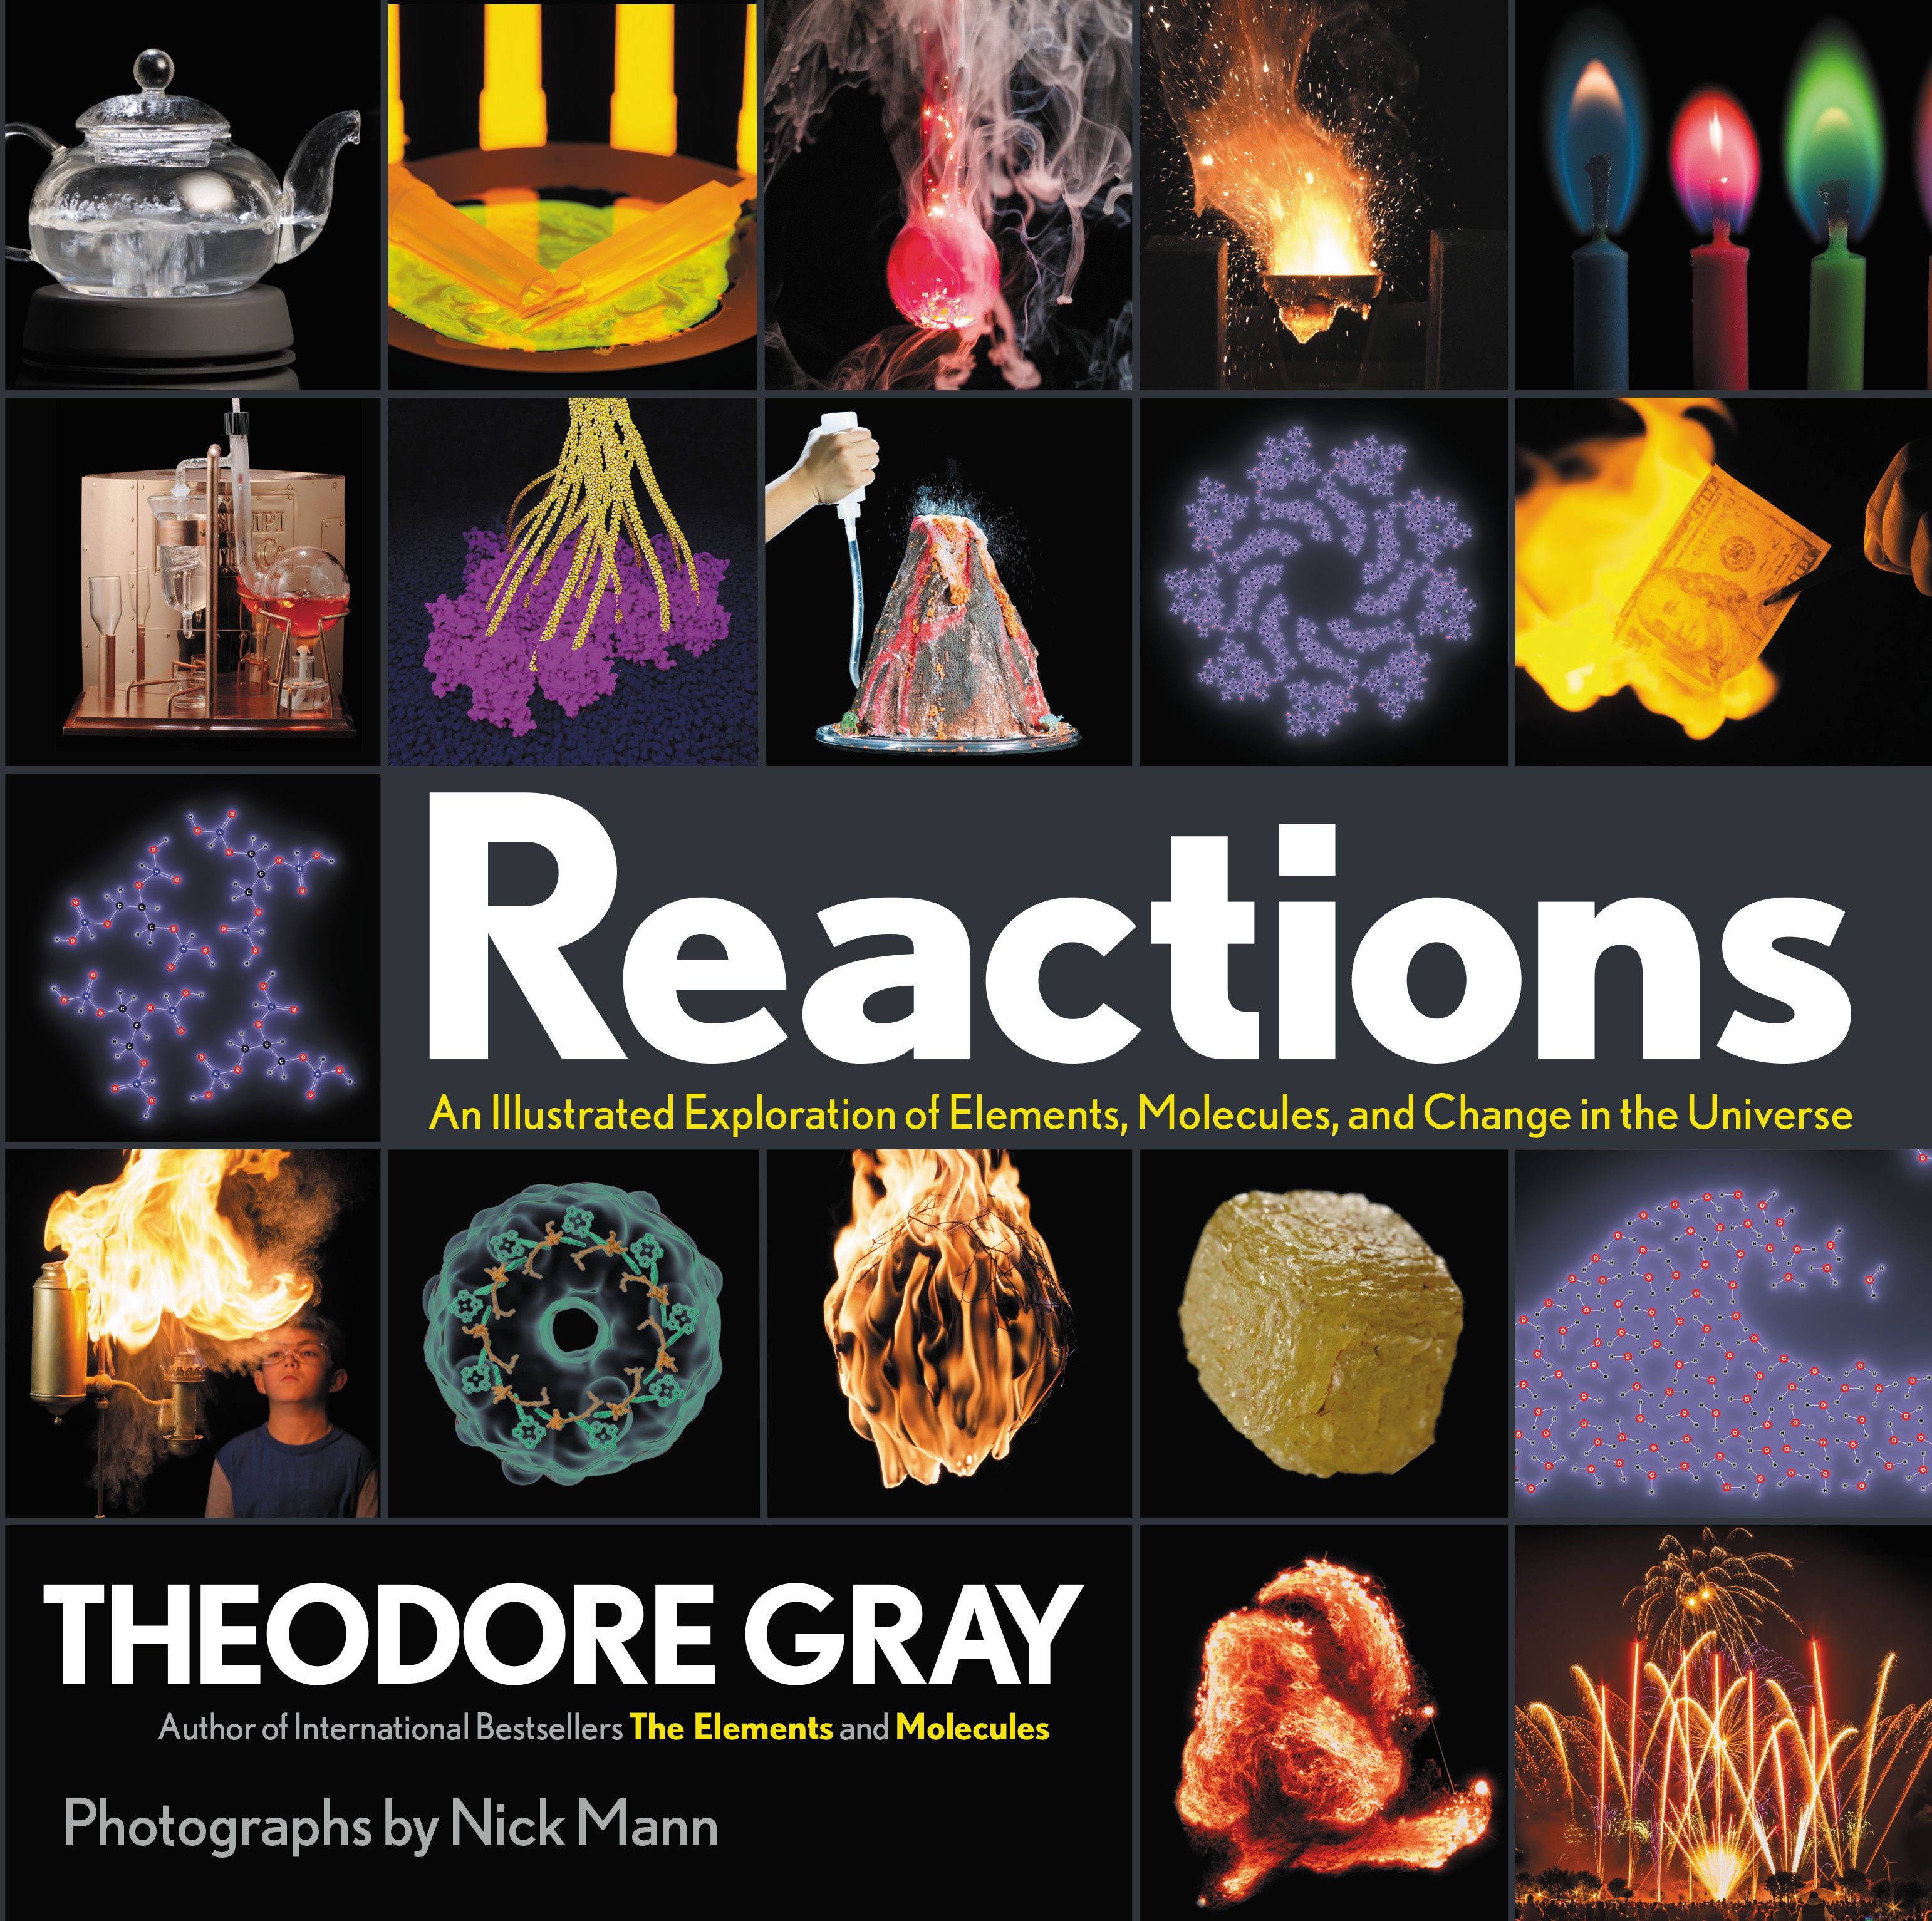 Reactions: An Illustrated Exploration of Elements, Molecules, and Change in the Universe by Theodore Gray, ISBN: 9780316391221